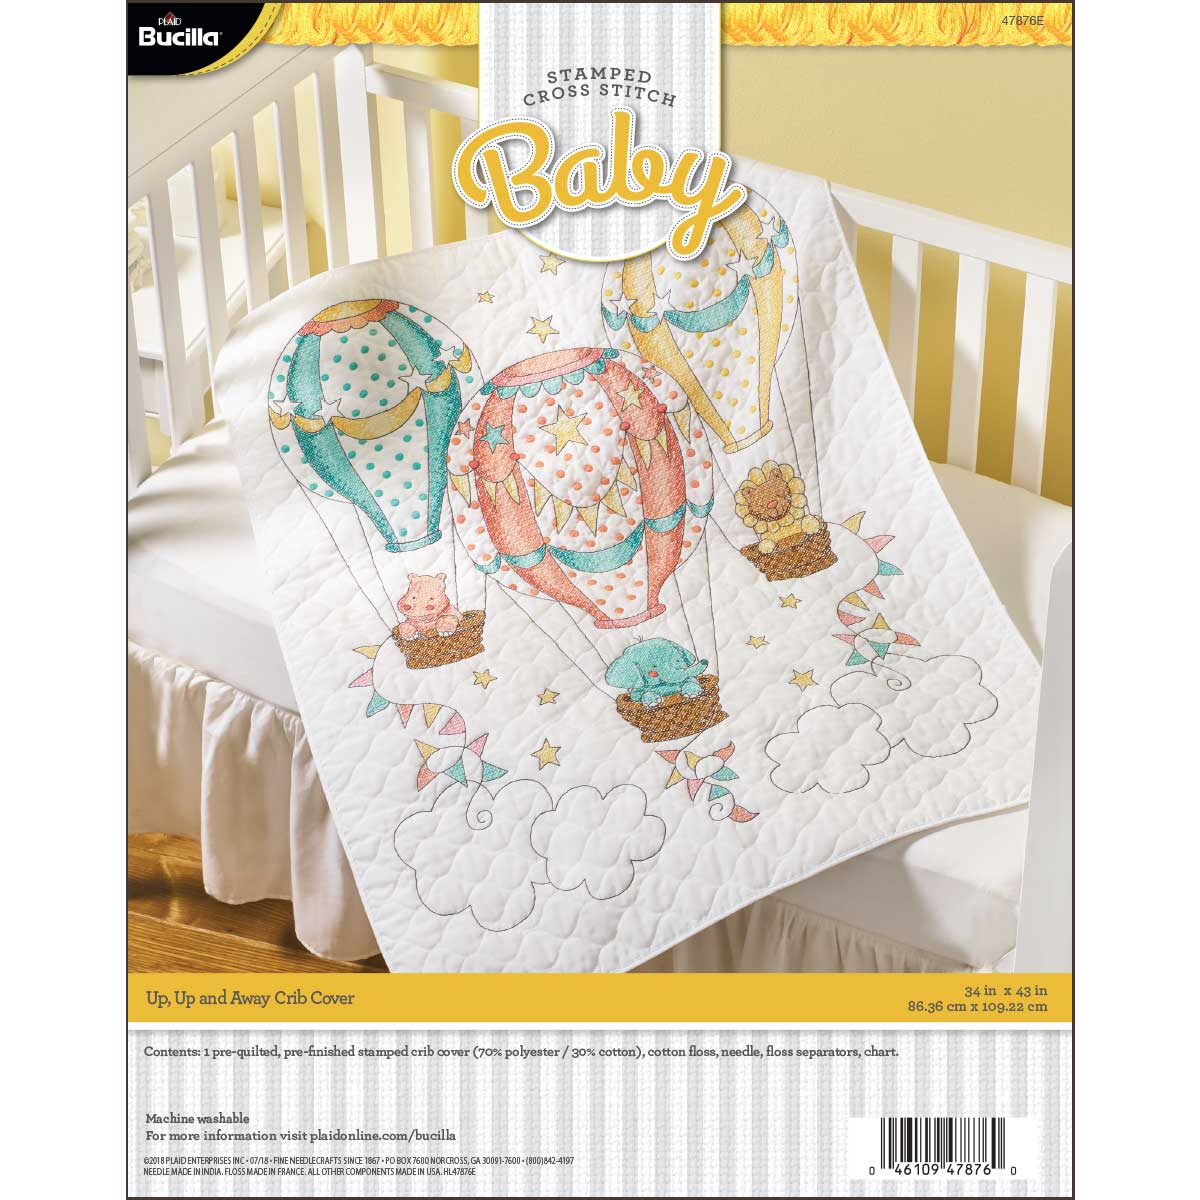 Bucilla ® Baby - Stamped Cross Stitch - Crib Ensembles - Up Up and Away - Crib Cover